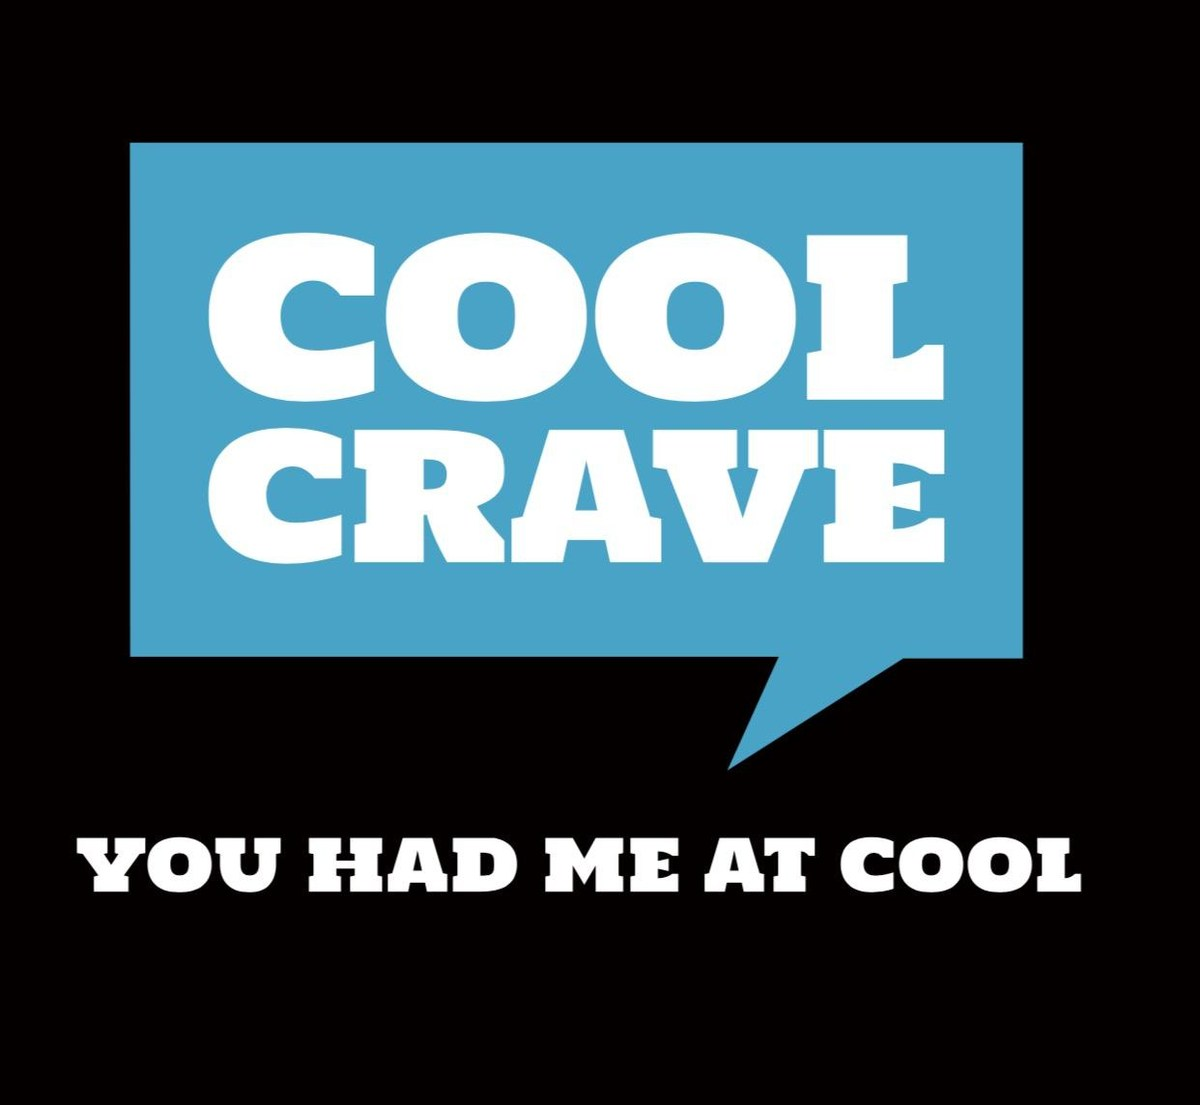 Cool Crave Truck